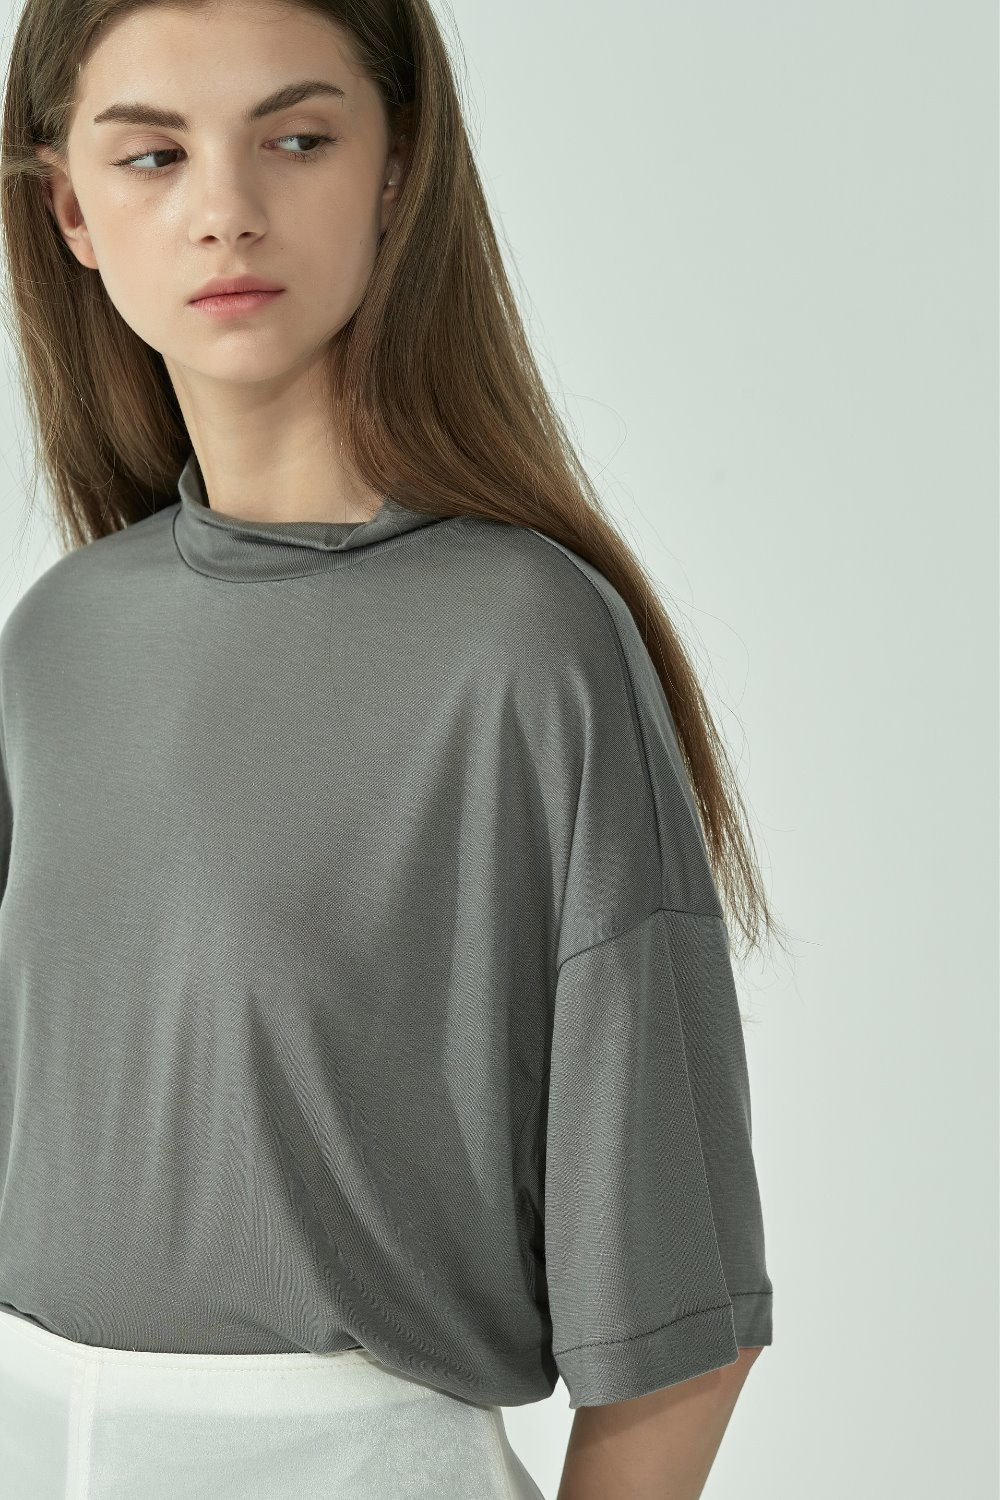 HIGH MOCK-NECK SILKY TTS92TN11 CHARCOAL